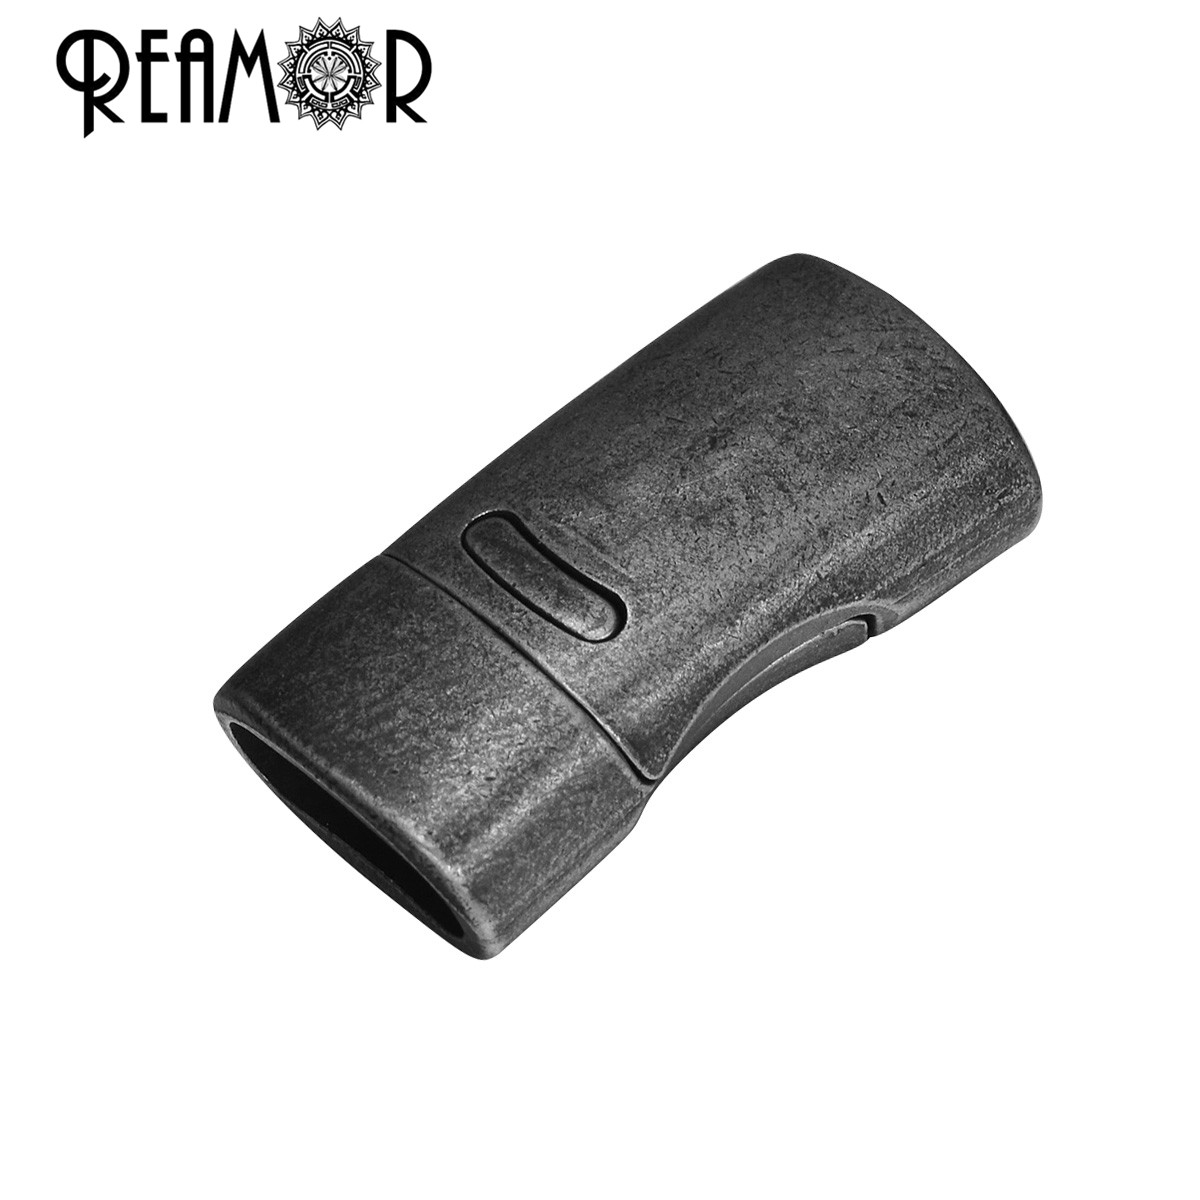 REAMOR Retro Black 316l Stainless Steel 10*5mm Oblate Embedded Magnetic Clasp For DIY Leather Bracelet Buckle Jewelry Findings